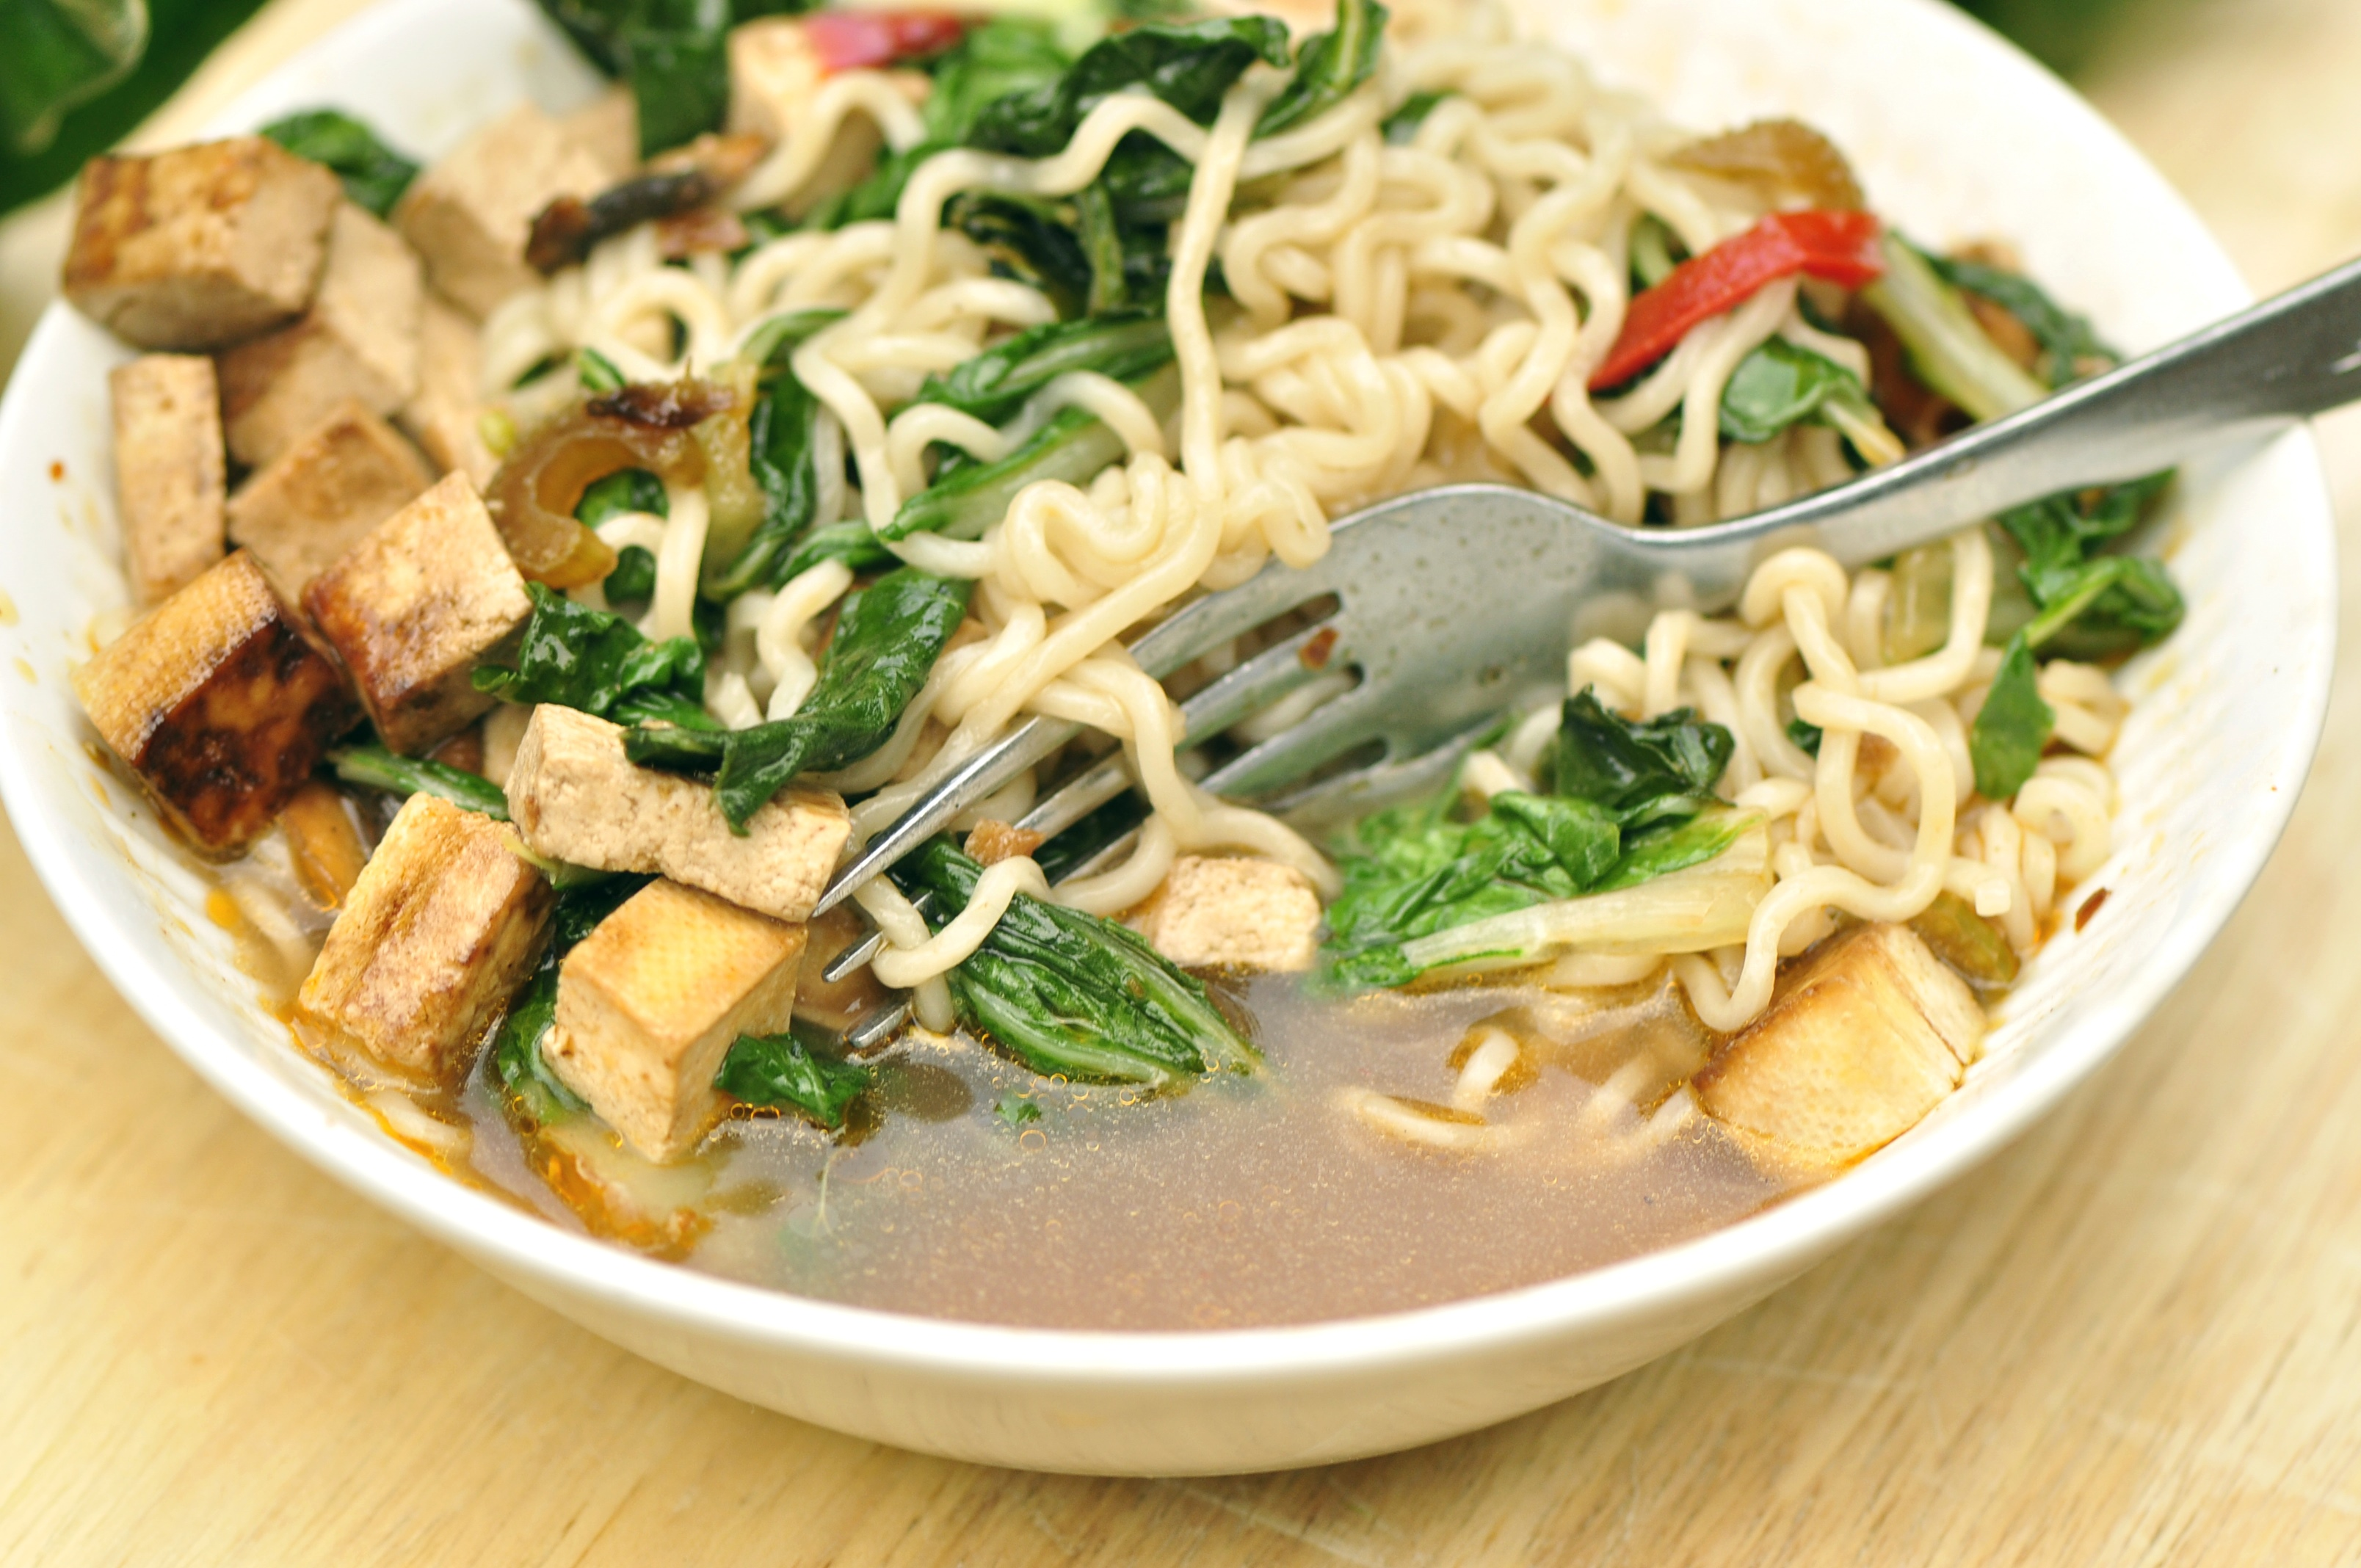 Hot-and-Sour Peanutty Noodles With Bok Choy Recipes — Dishmaps